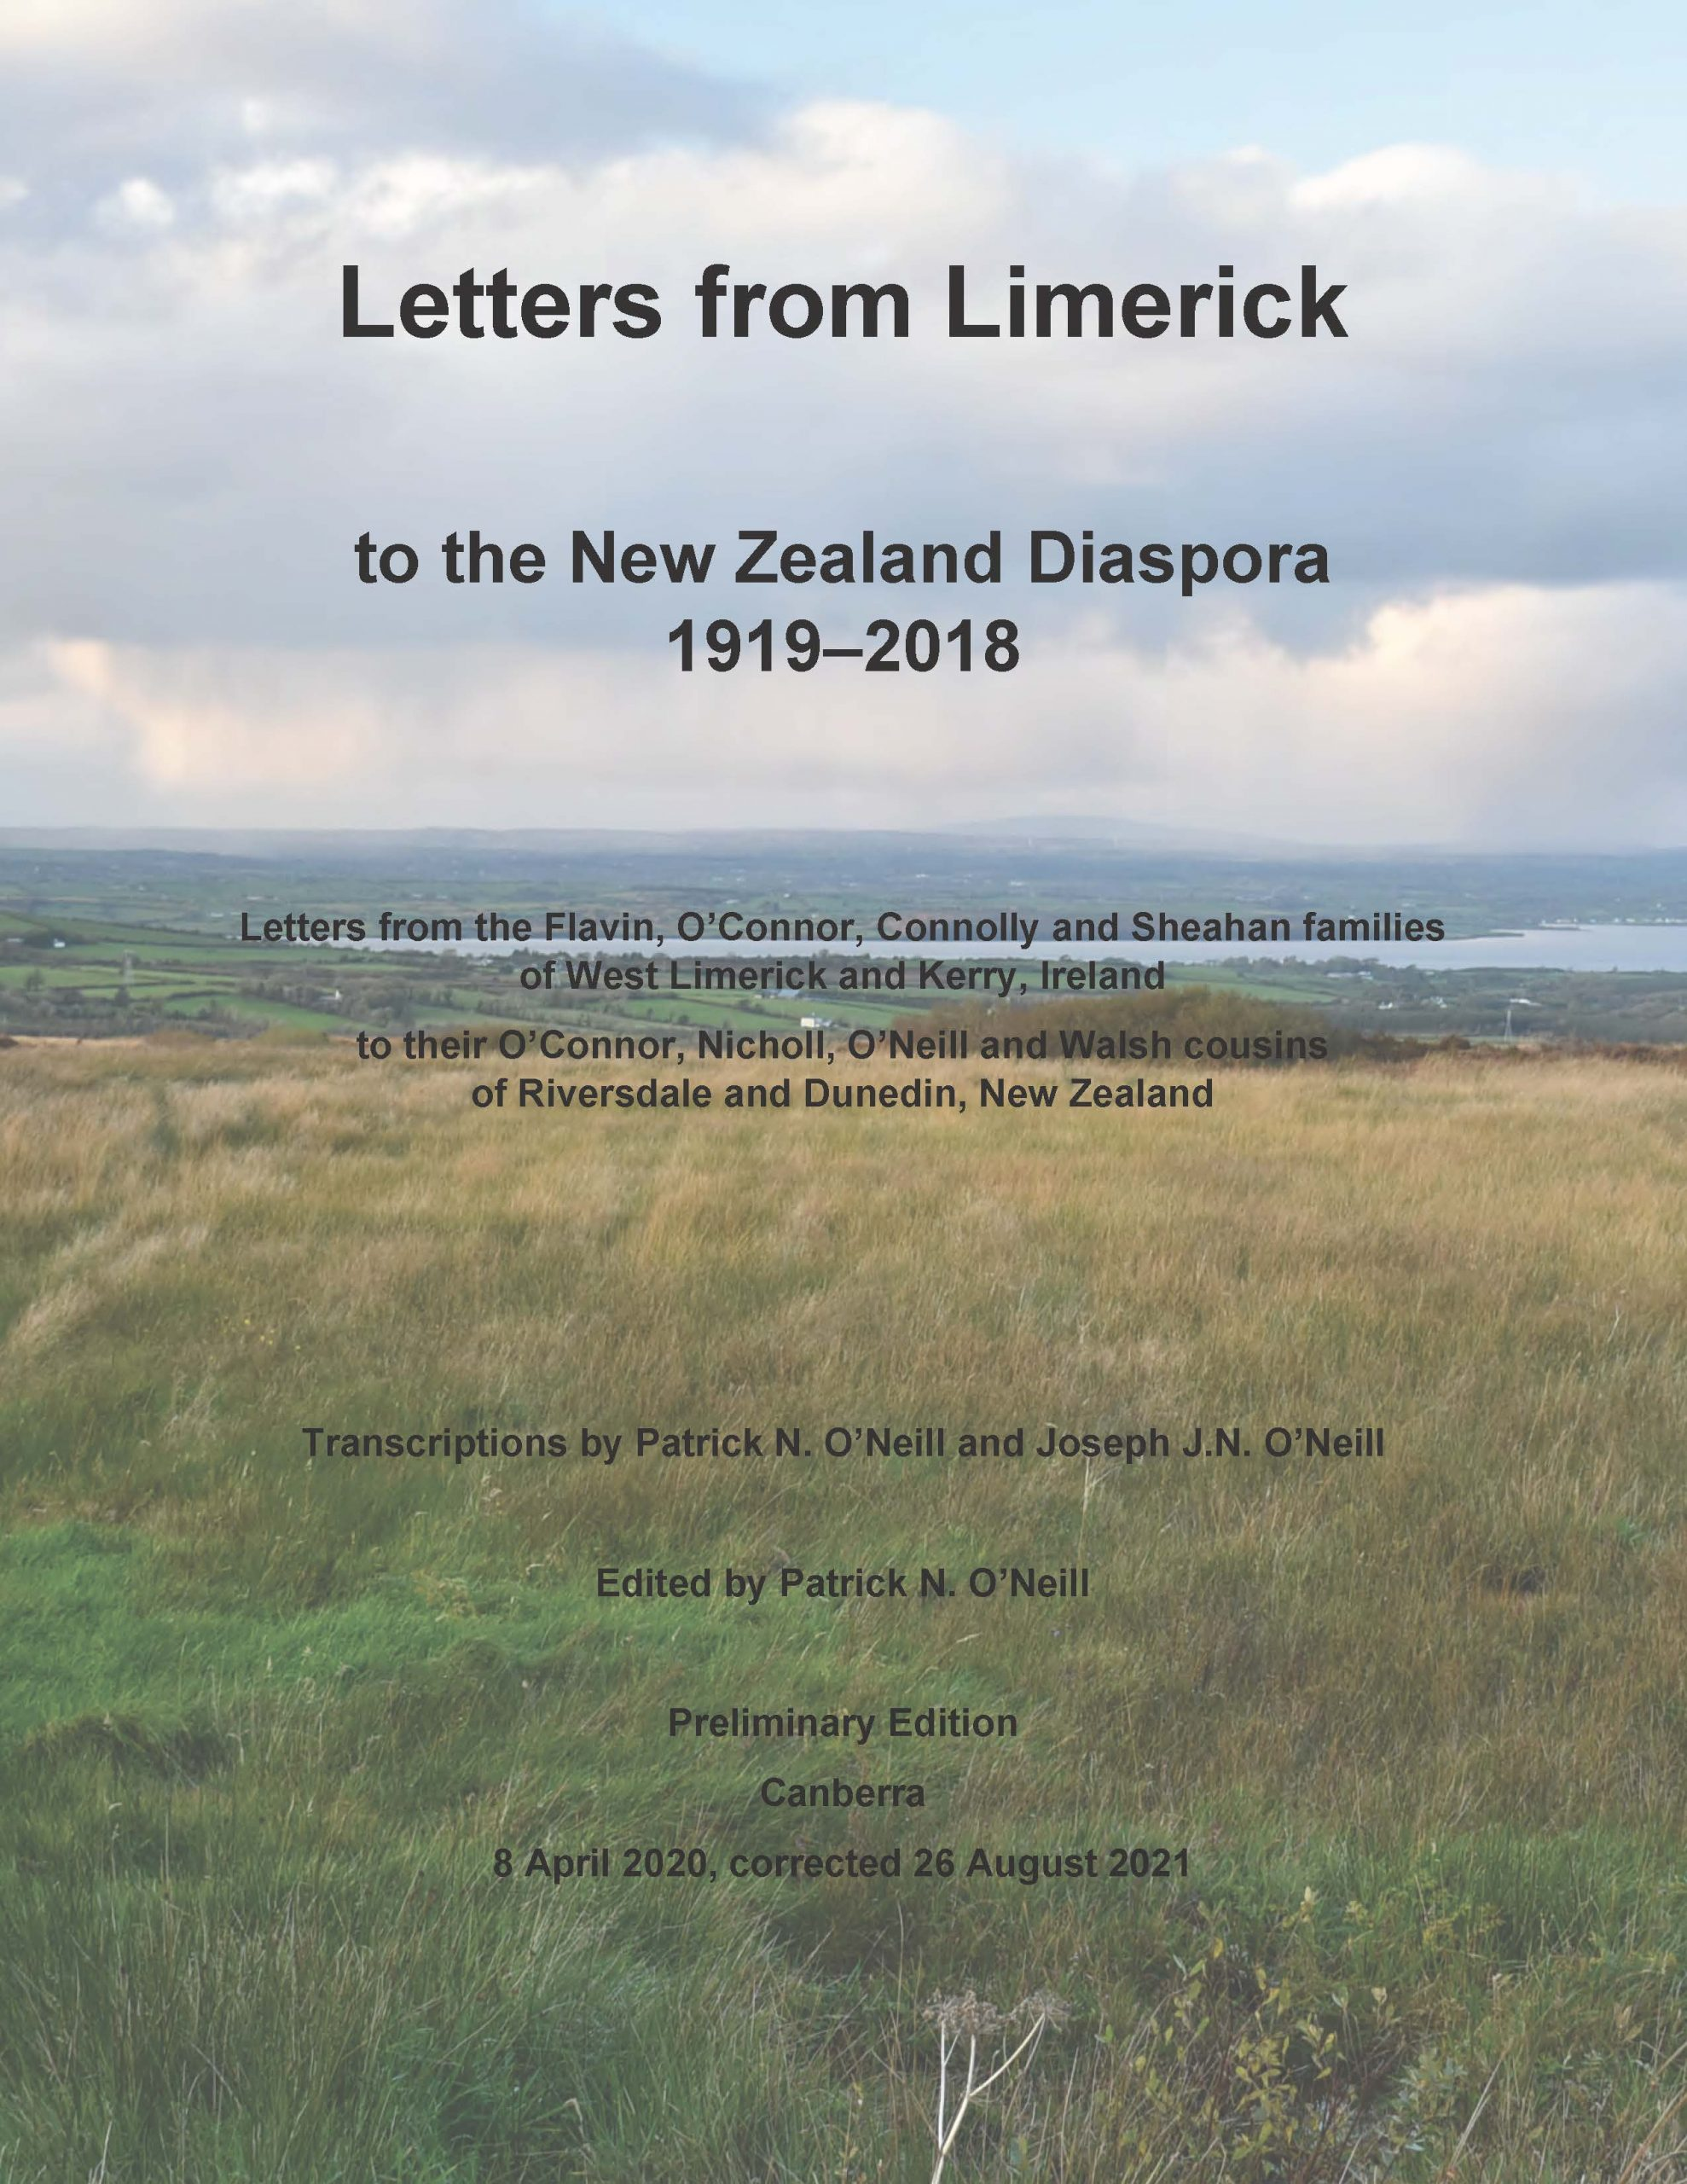 Letters from Limerick